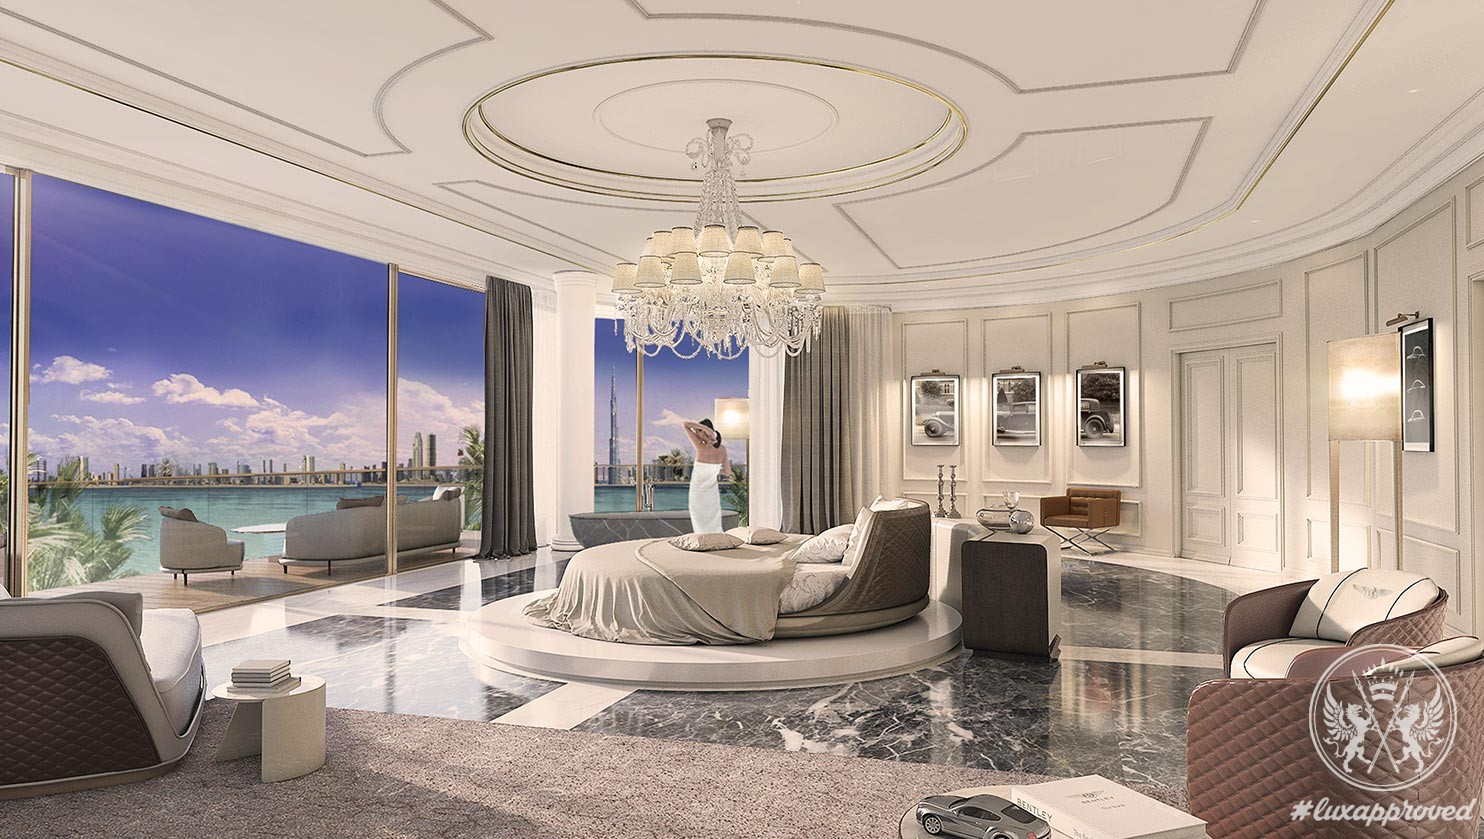 Dubai World Islands Will Welcome Luxury Bentley Villas